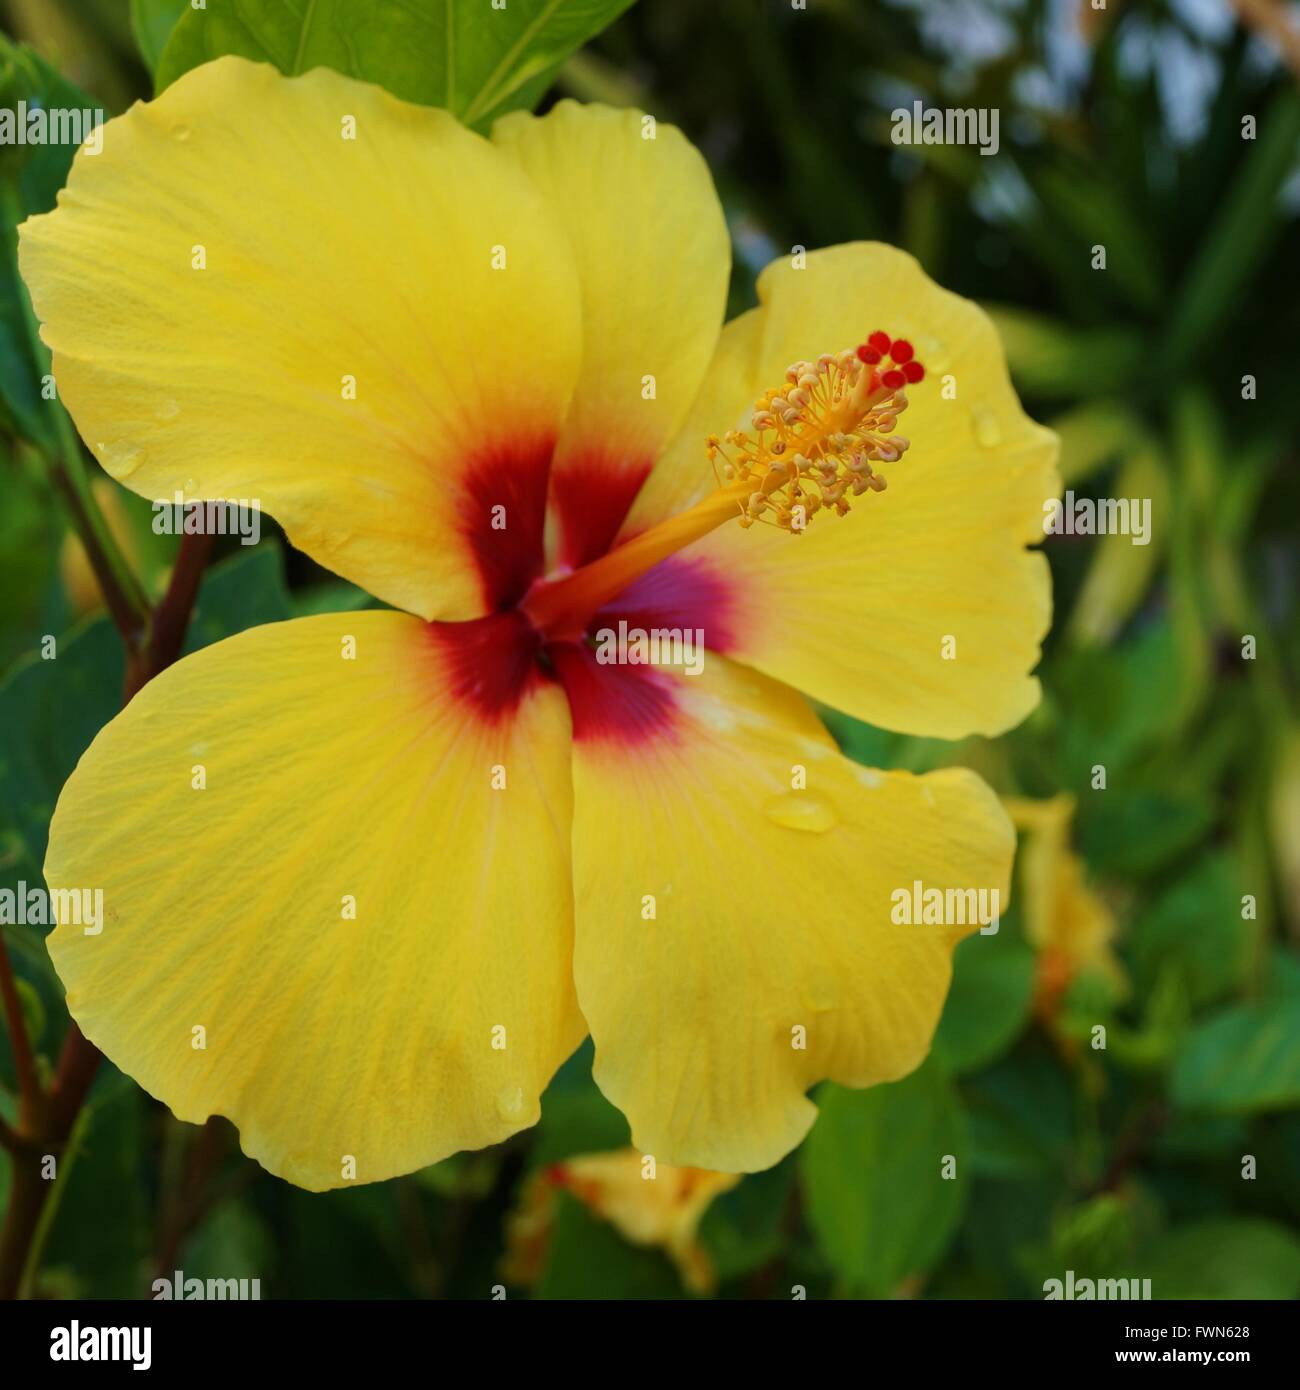 Yellow hibiscus flower with long red and yellow stamen stock photo yellow hibiscus flower with long red and yellow stamen izmirmasajfo